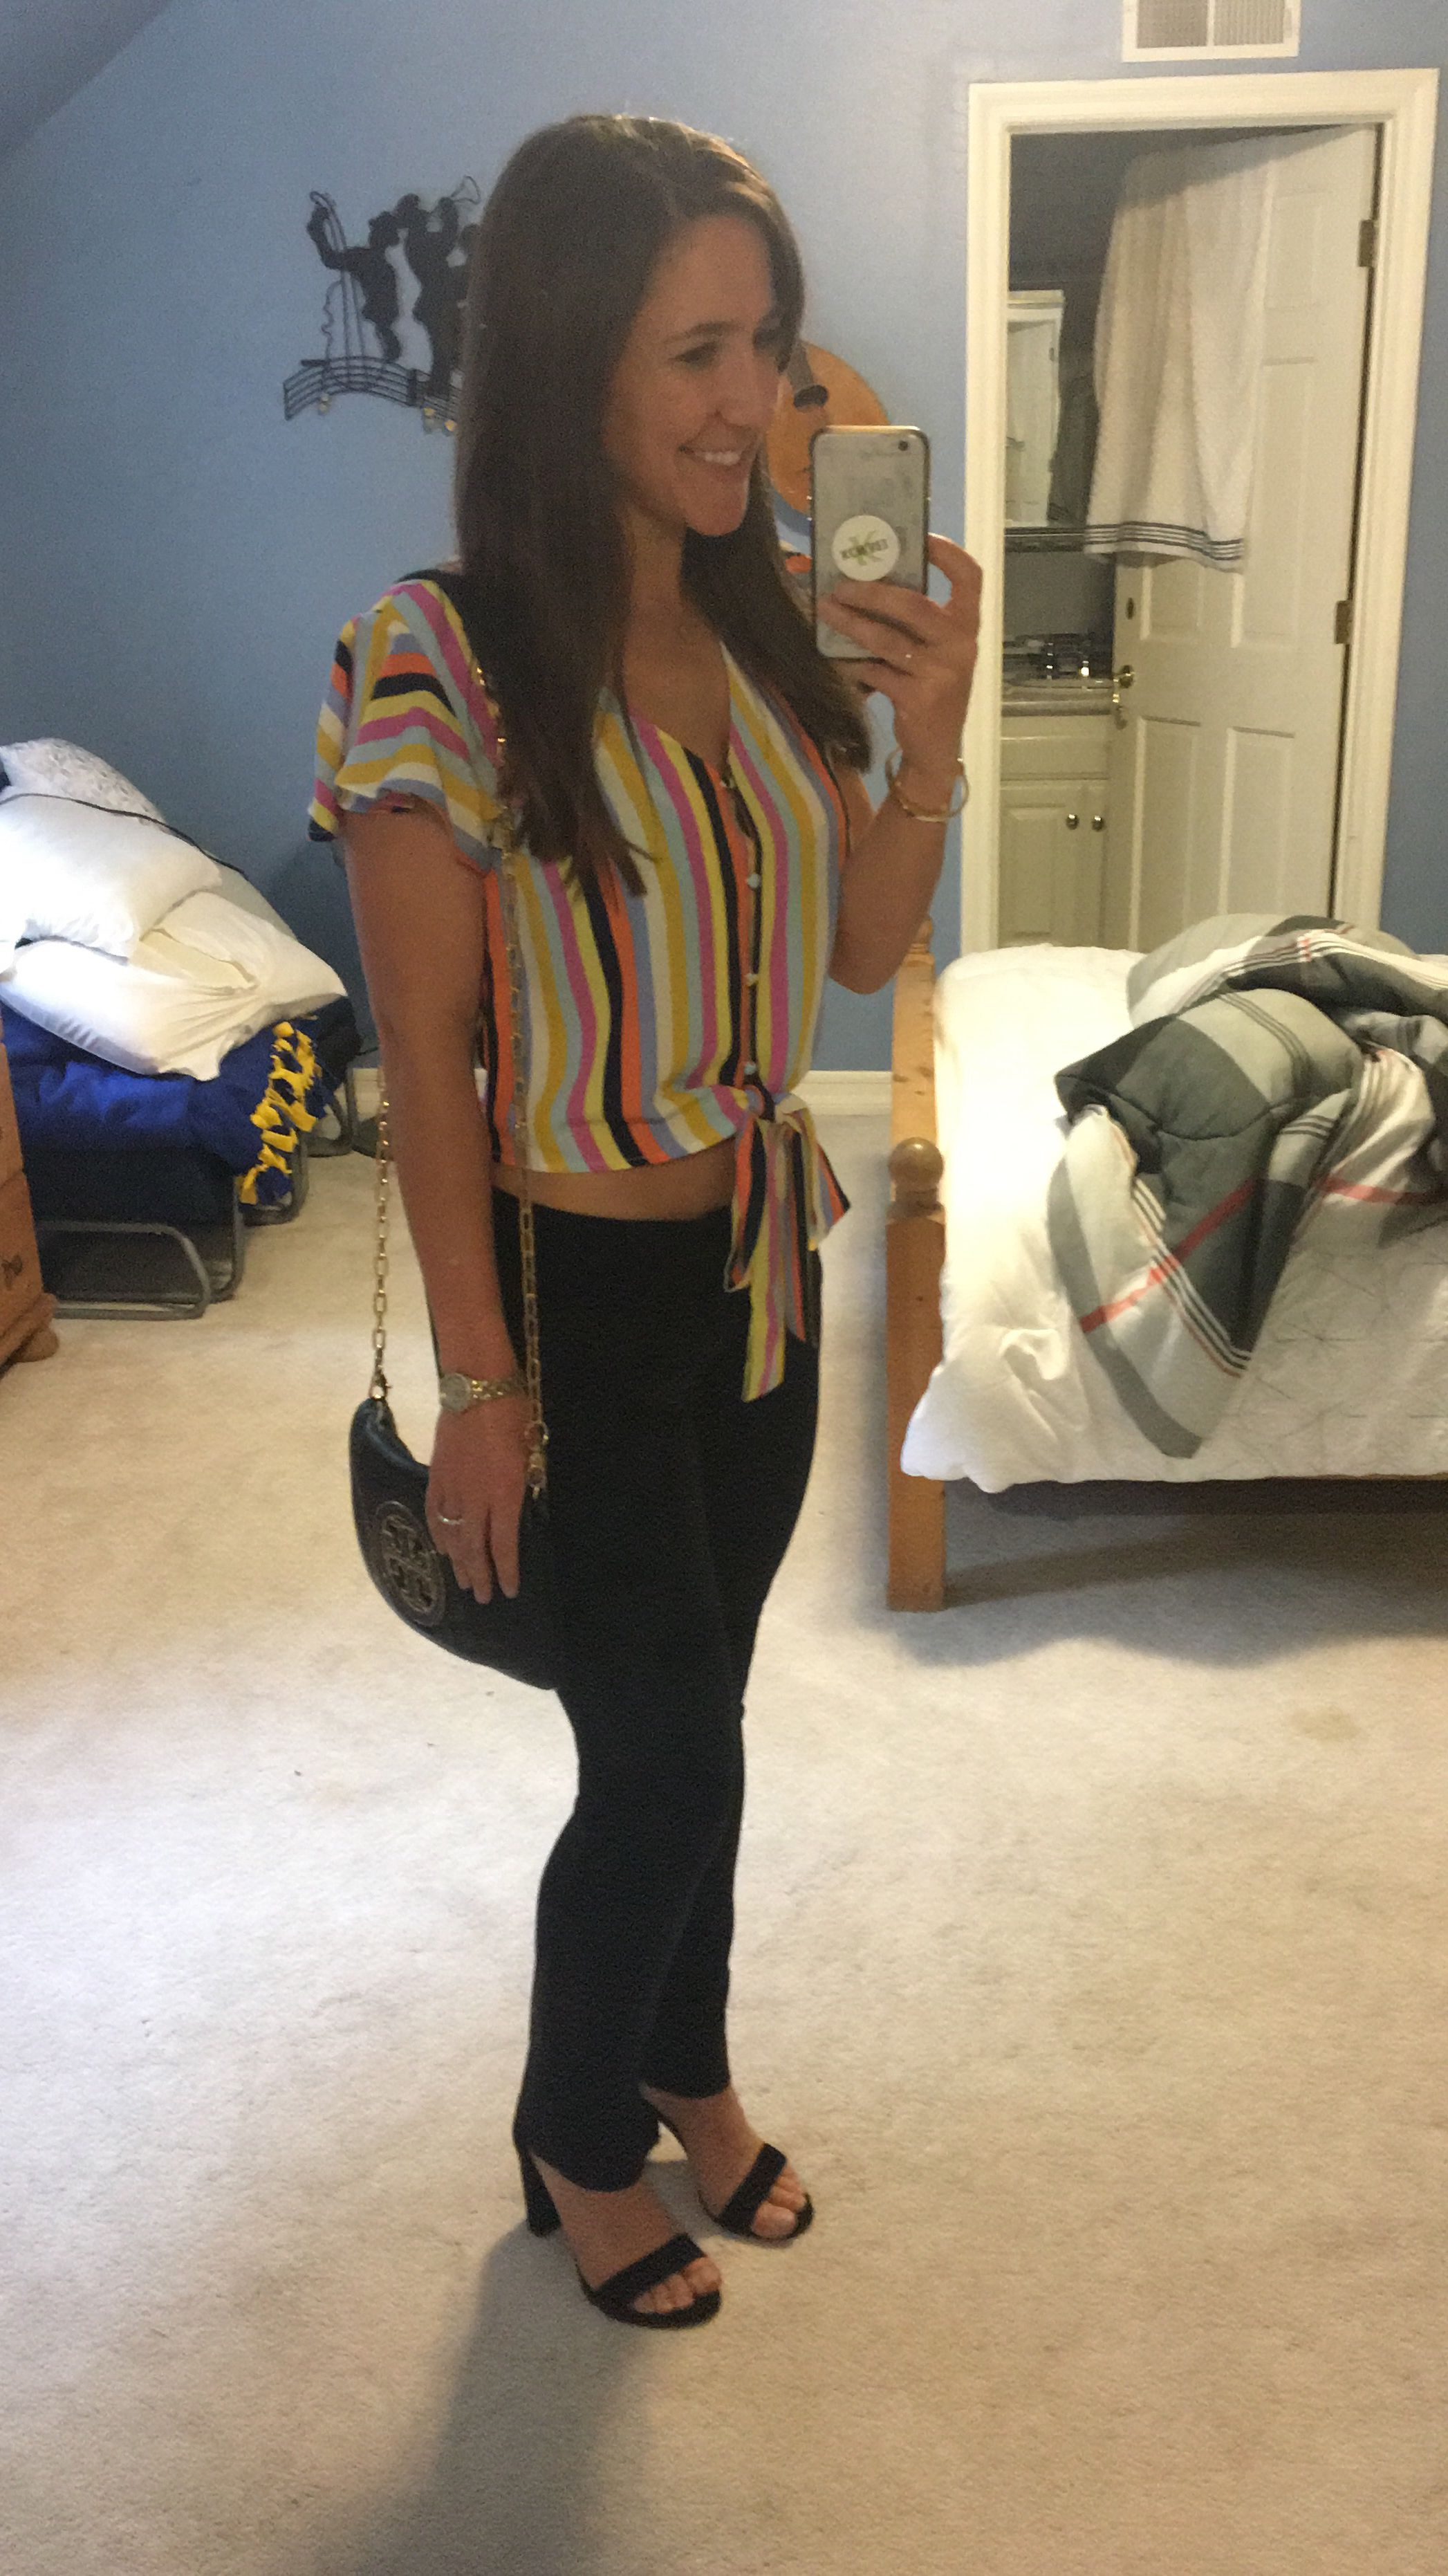 026bab2b10 Pin by Vanessa Fimreite on Outfits for athletes